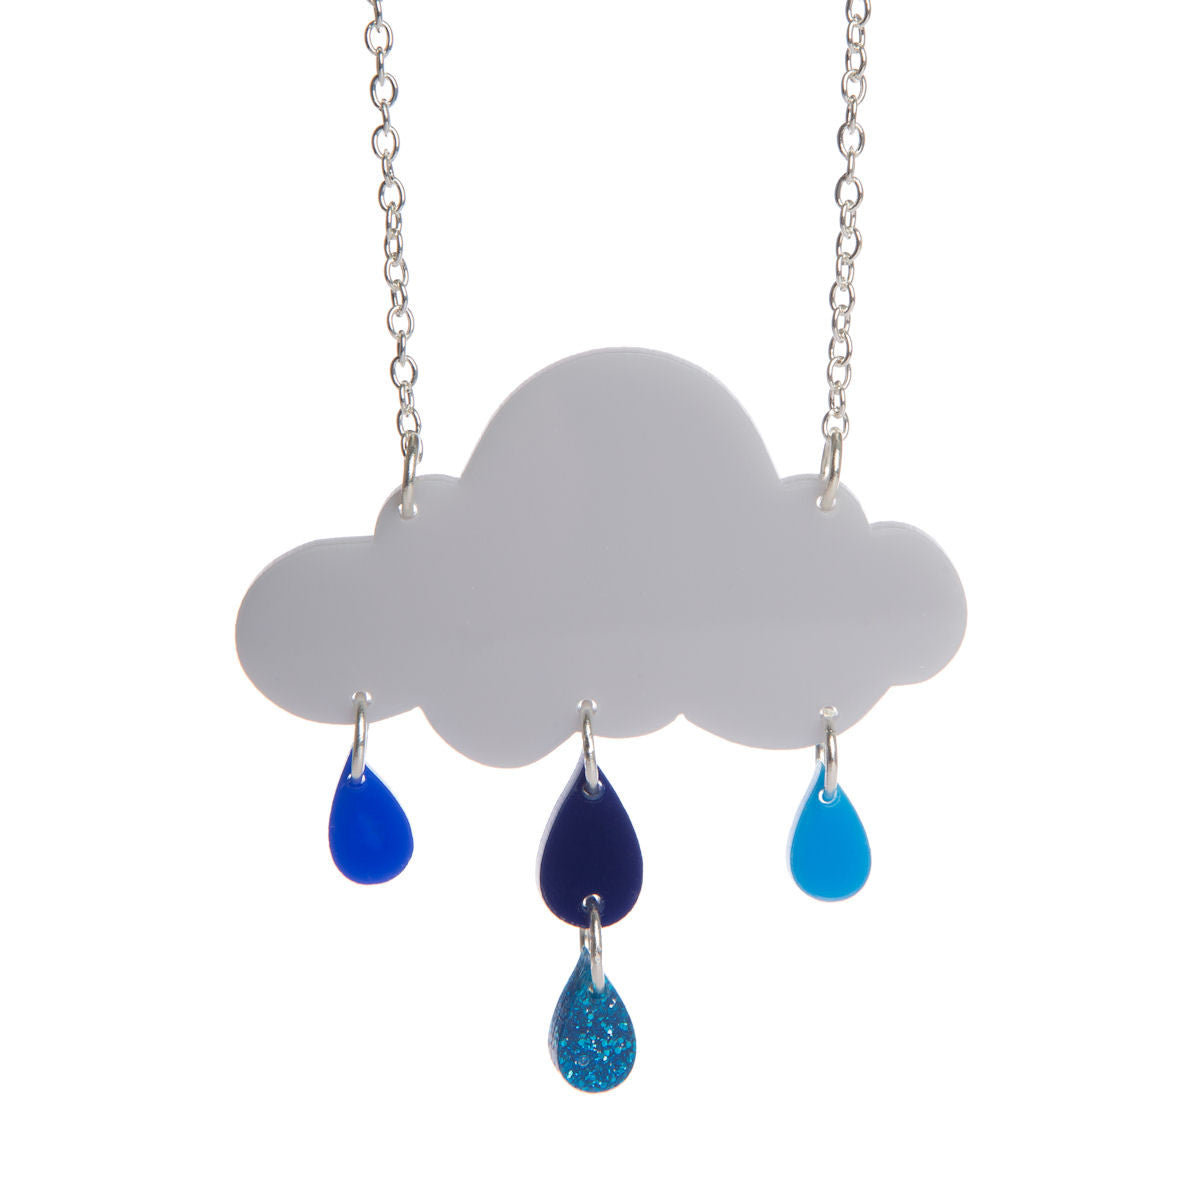 Sugar & Vice Rain Cloud Necklace